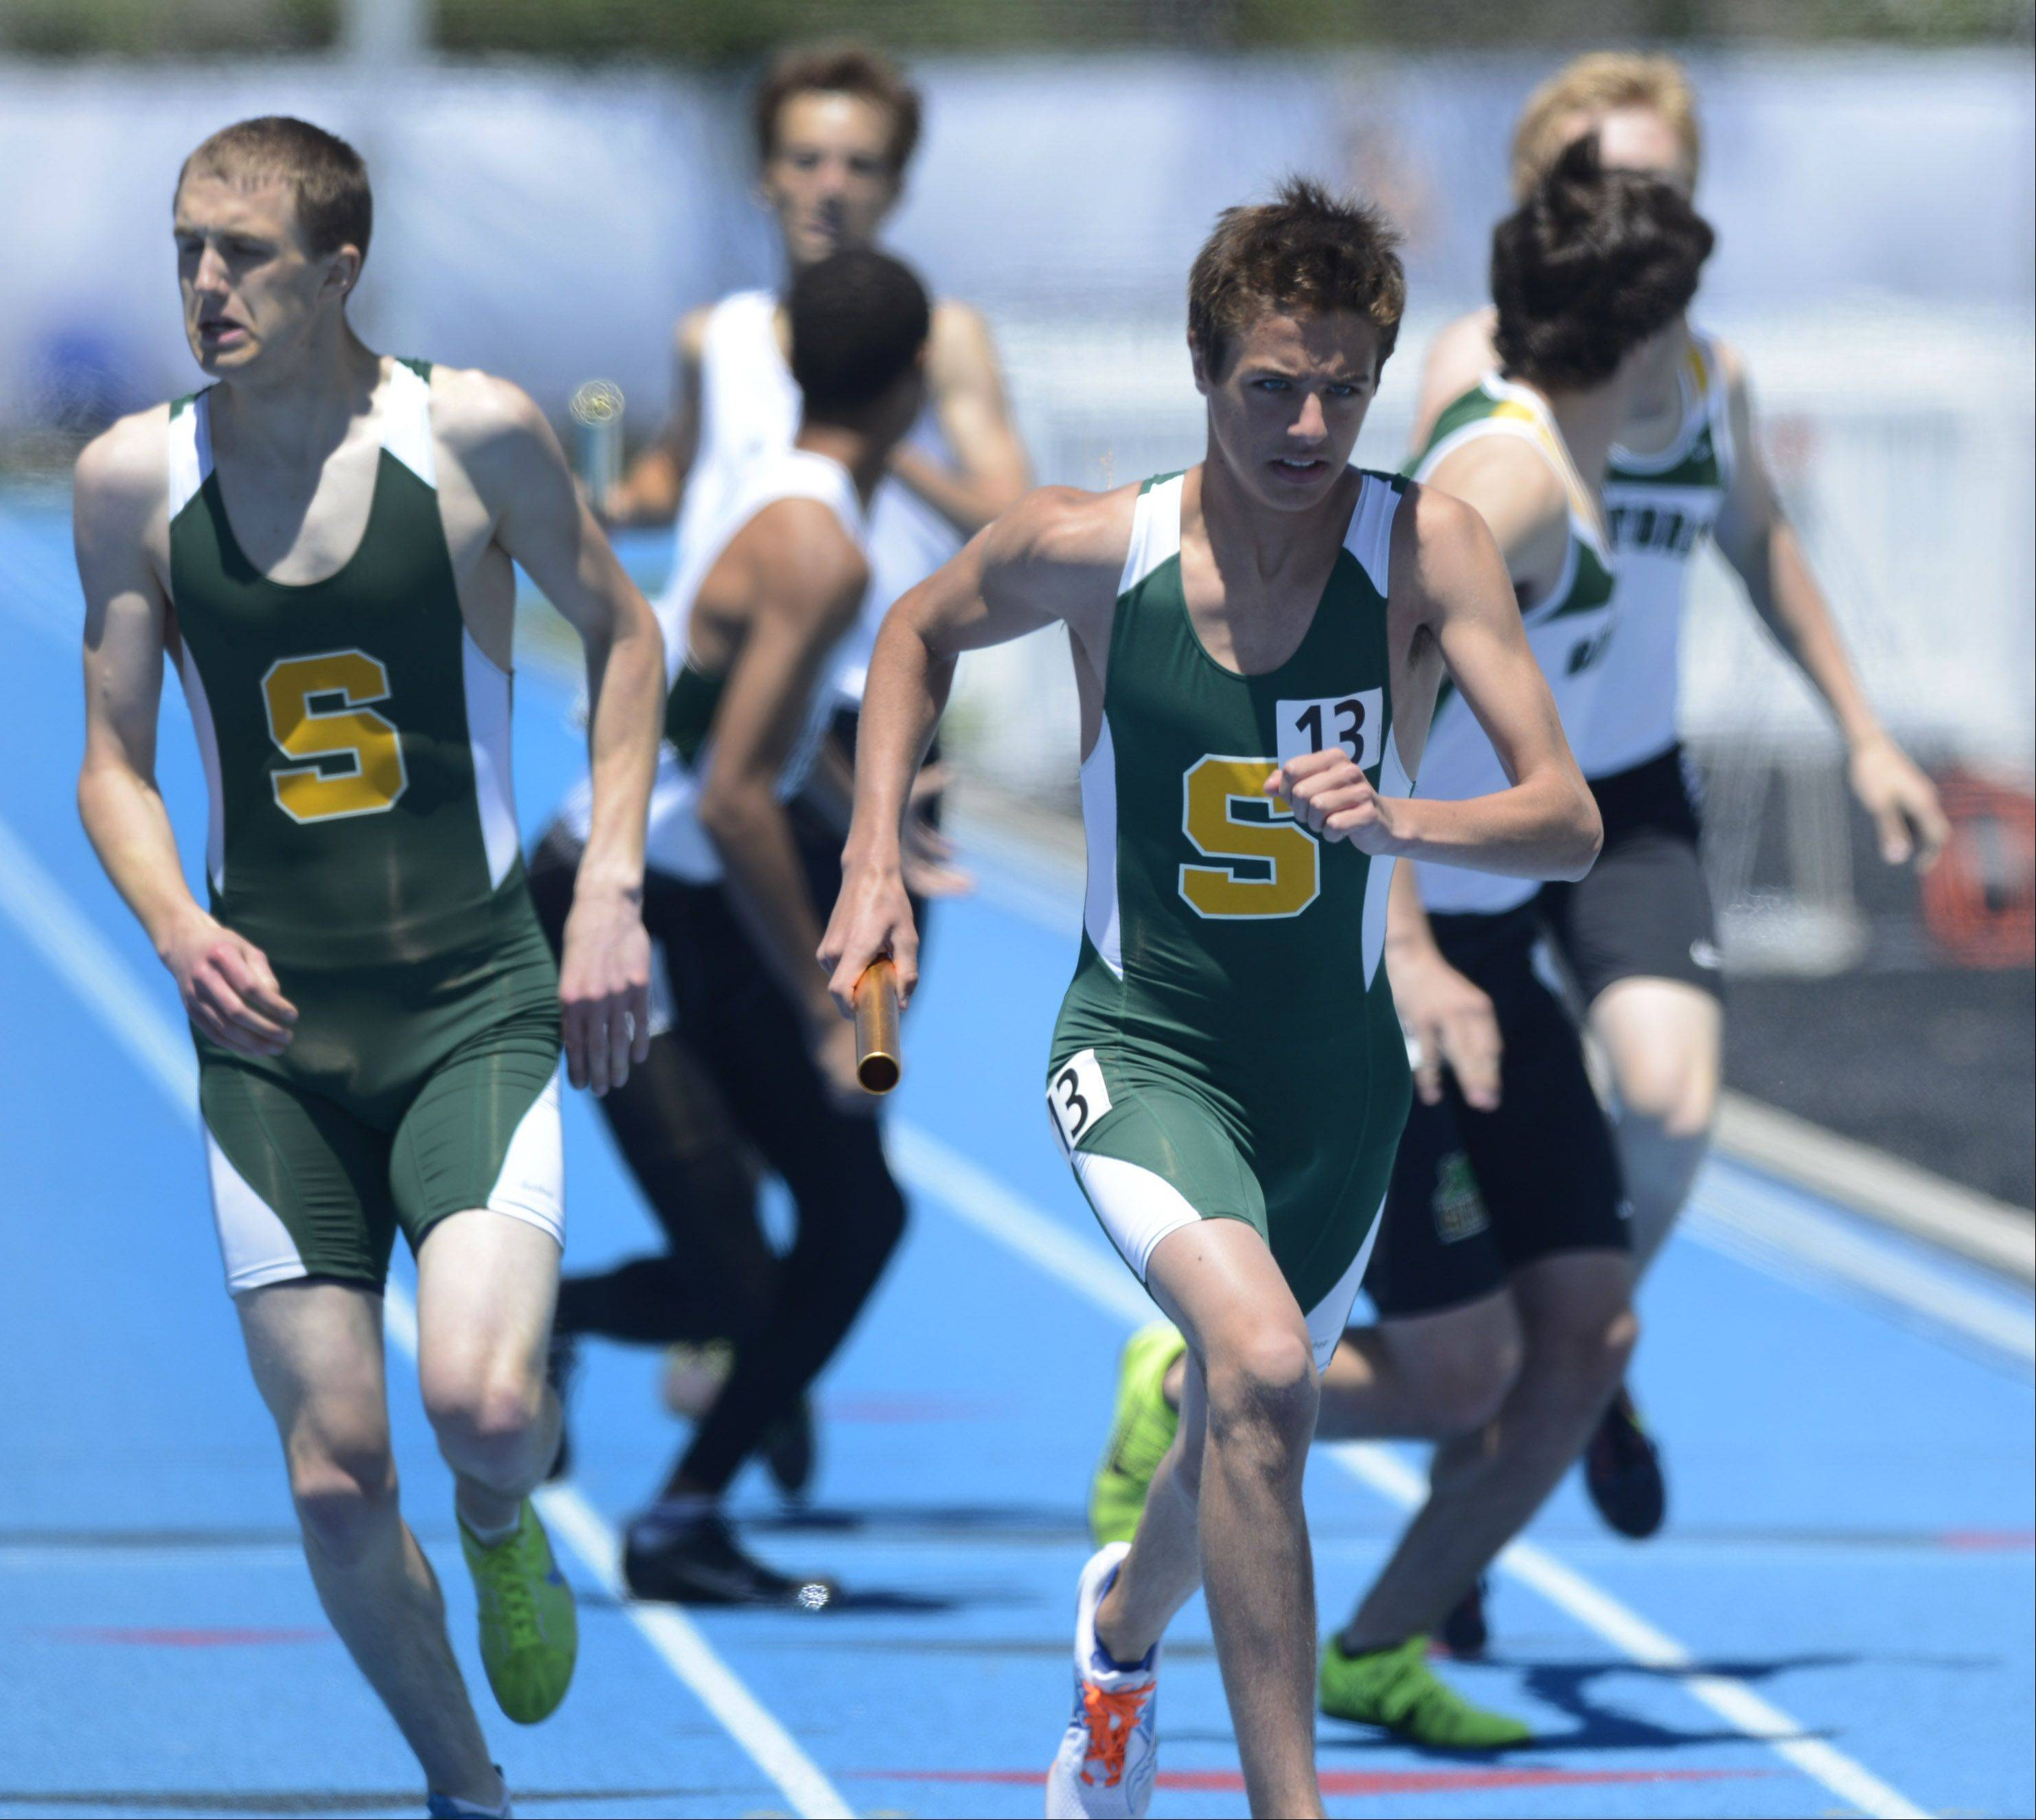 Stevenson's Jared Borowsky carries the baton for his team in the Class 3A 4x800-meter relay during the boys state track preliminaries in Charleston Friday.